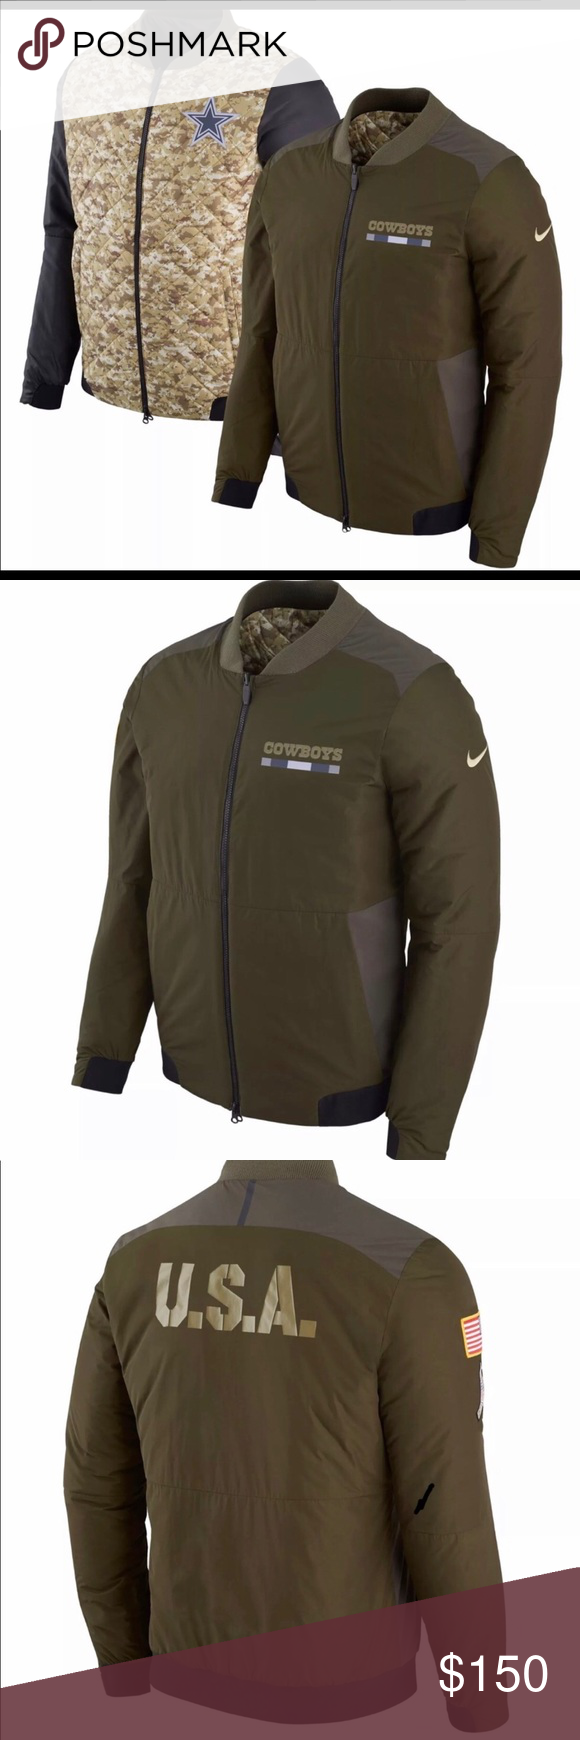 8aed53b1b3f Nike Cowboys Salute to Service Reversible Bomber New Nike Dallas Cowboys  Salute to Service Reversible Bomber Jacket Available Men's Size Medium & XL  MSRP: ...